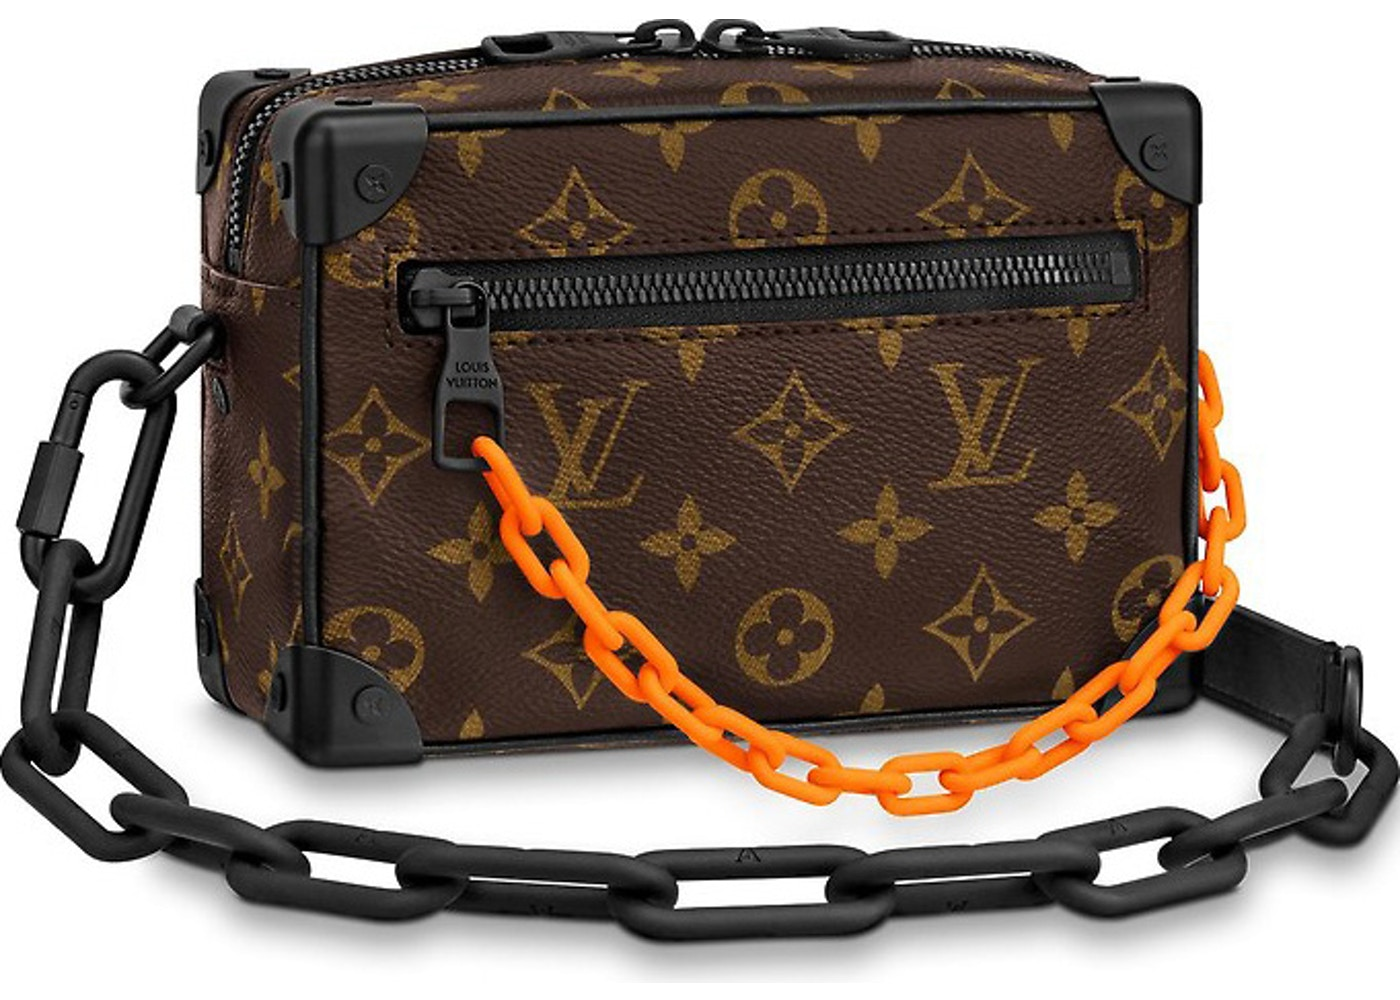 b68218237a The Guide to Buying and Selling Virgil Abloh's Louis Vuitton SS19 ...